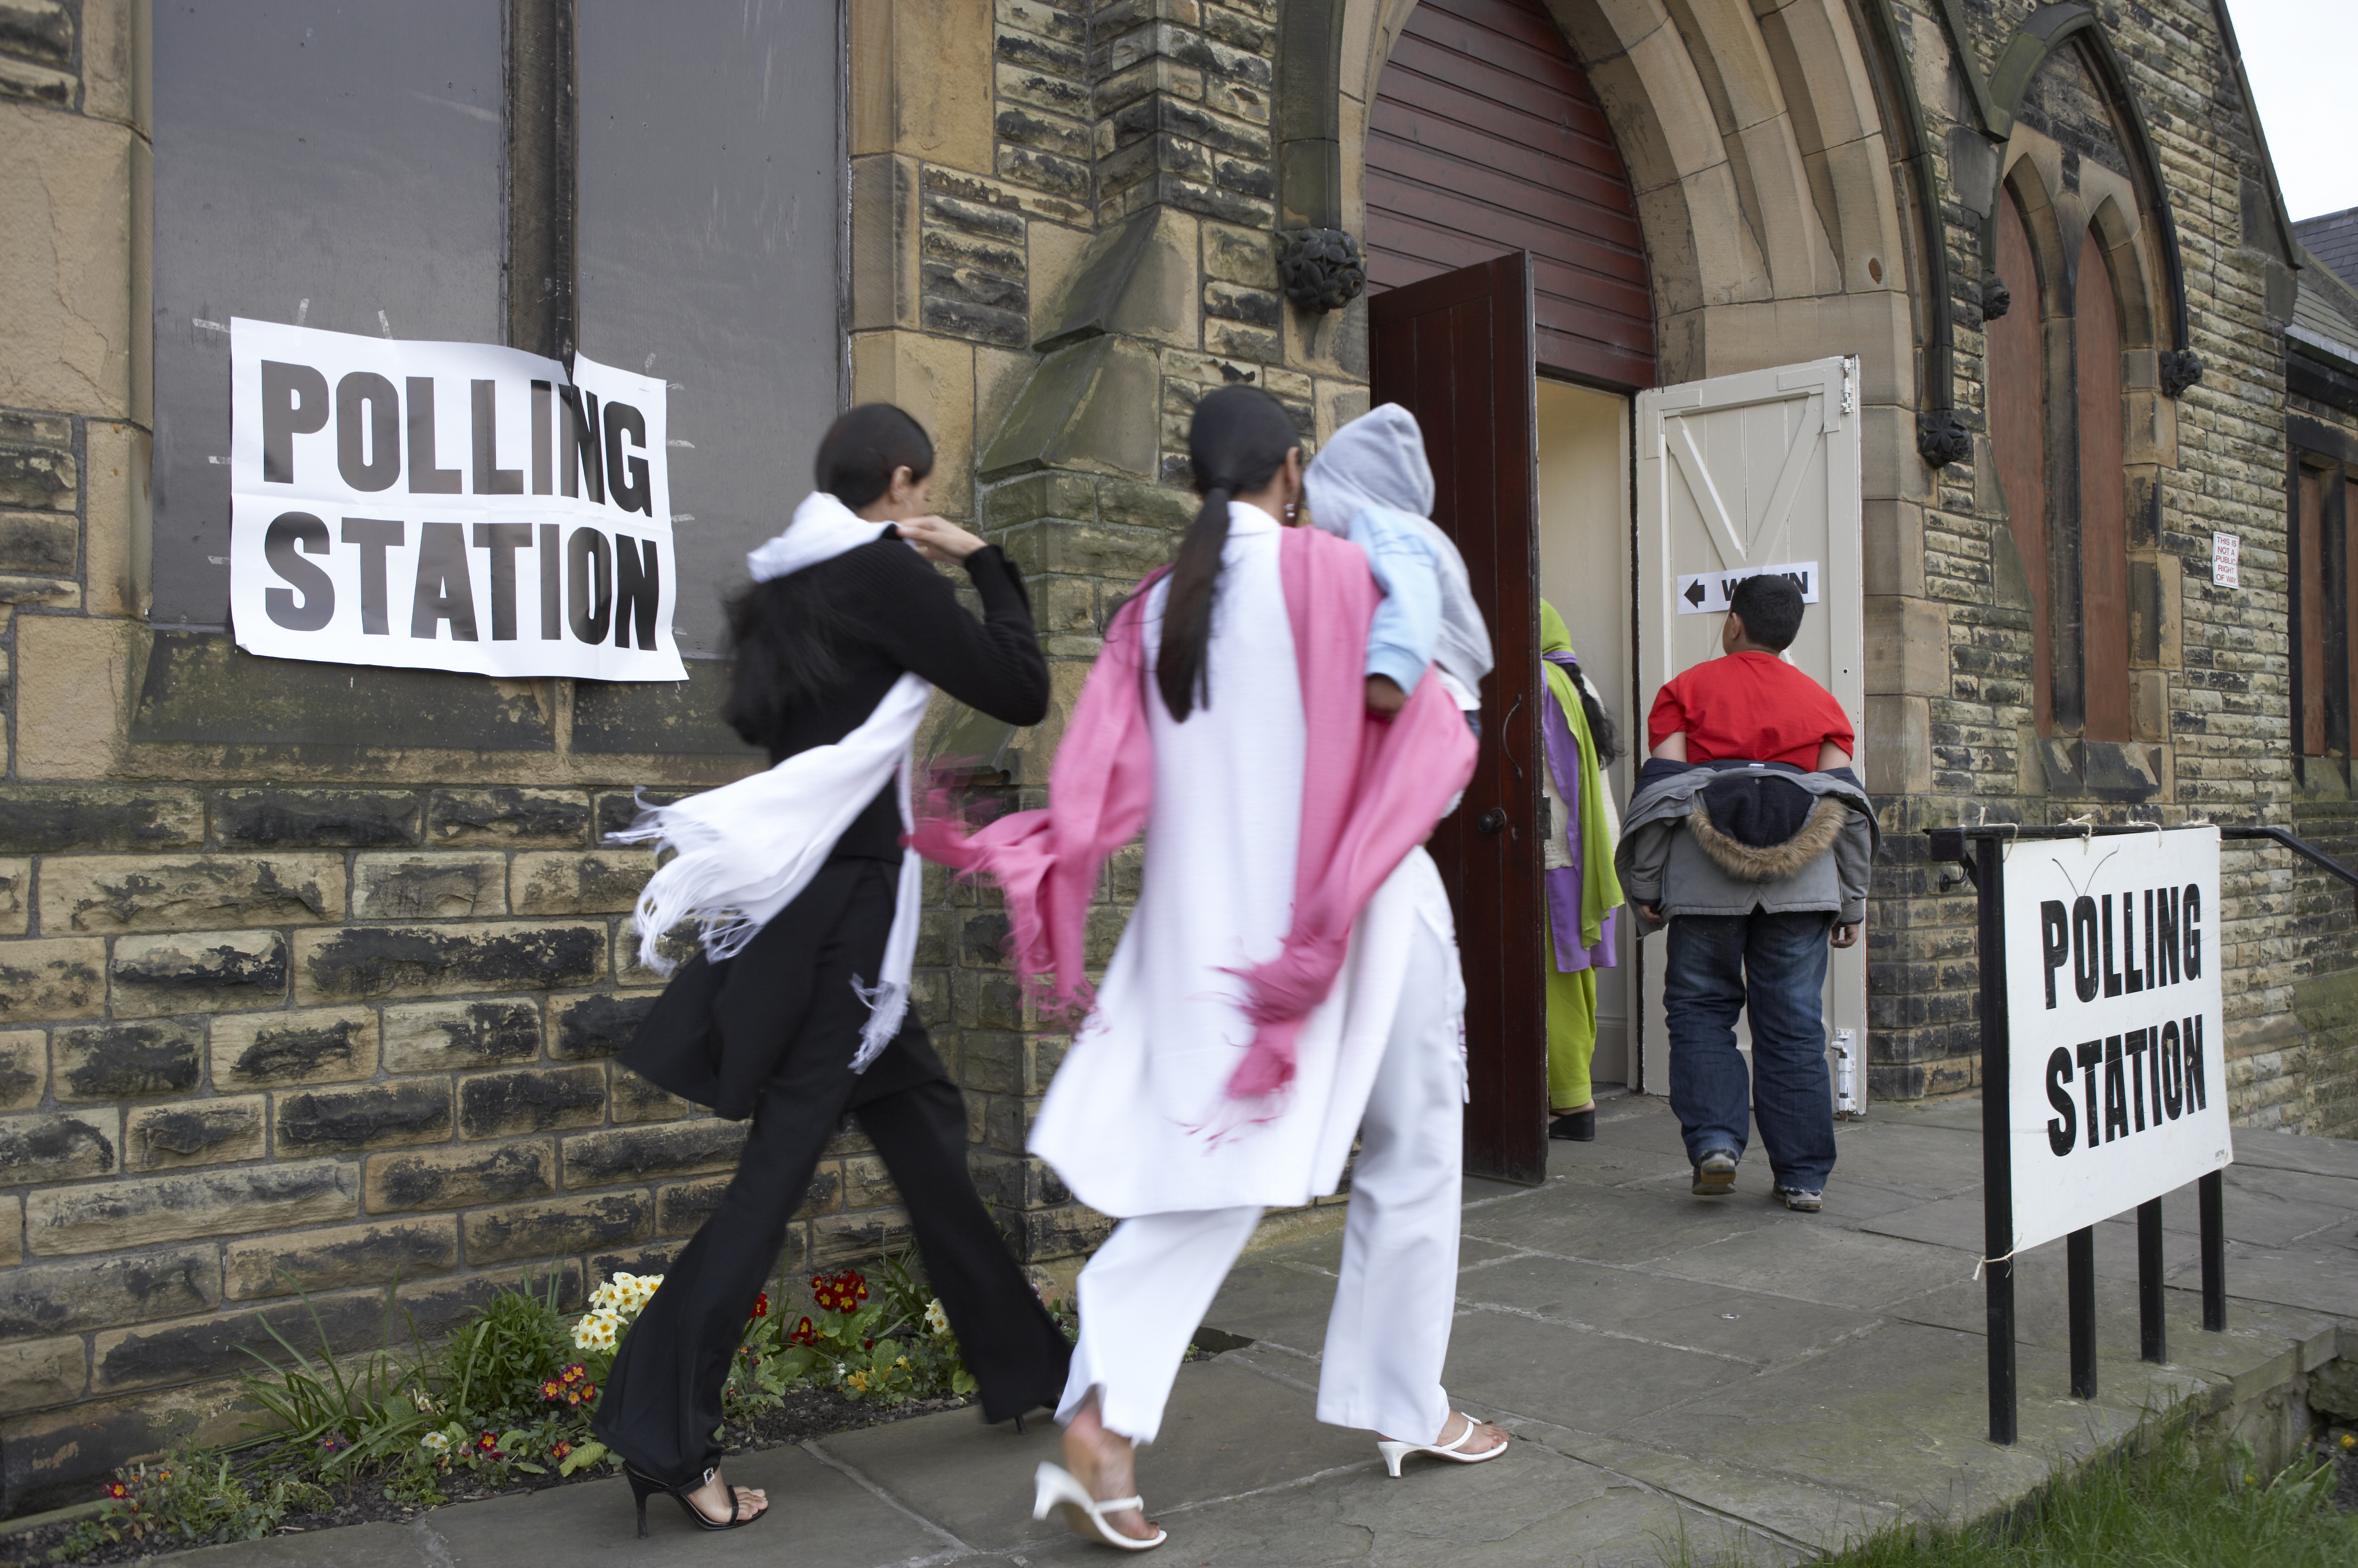 VOTING PATTERN: Improving ethnic minority representation in councils will help solve local issues